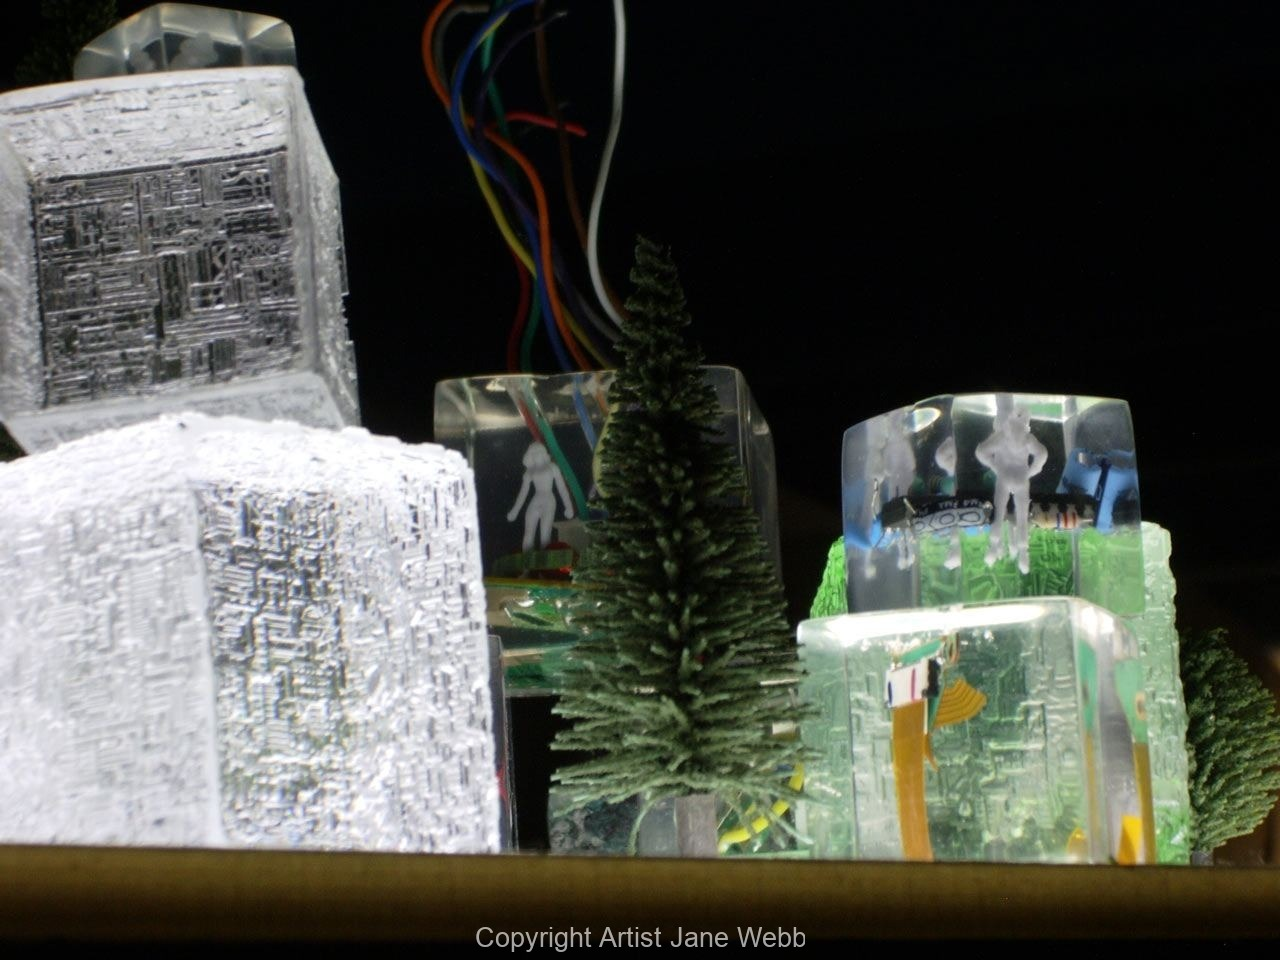 cast-resin-cyber-city-recycled-computers-art-Jane-Webb